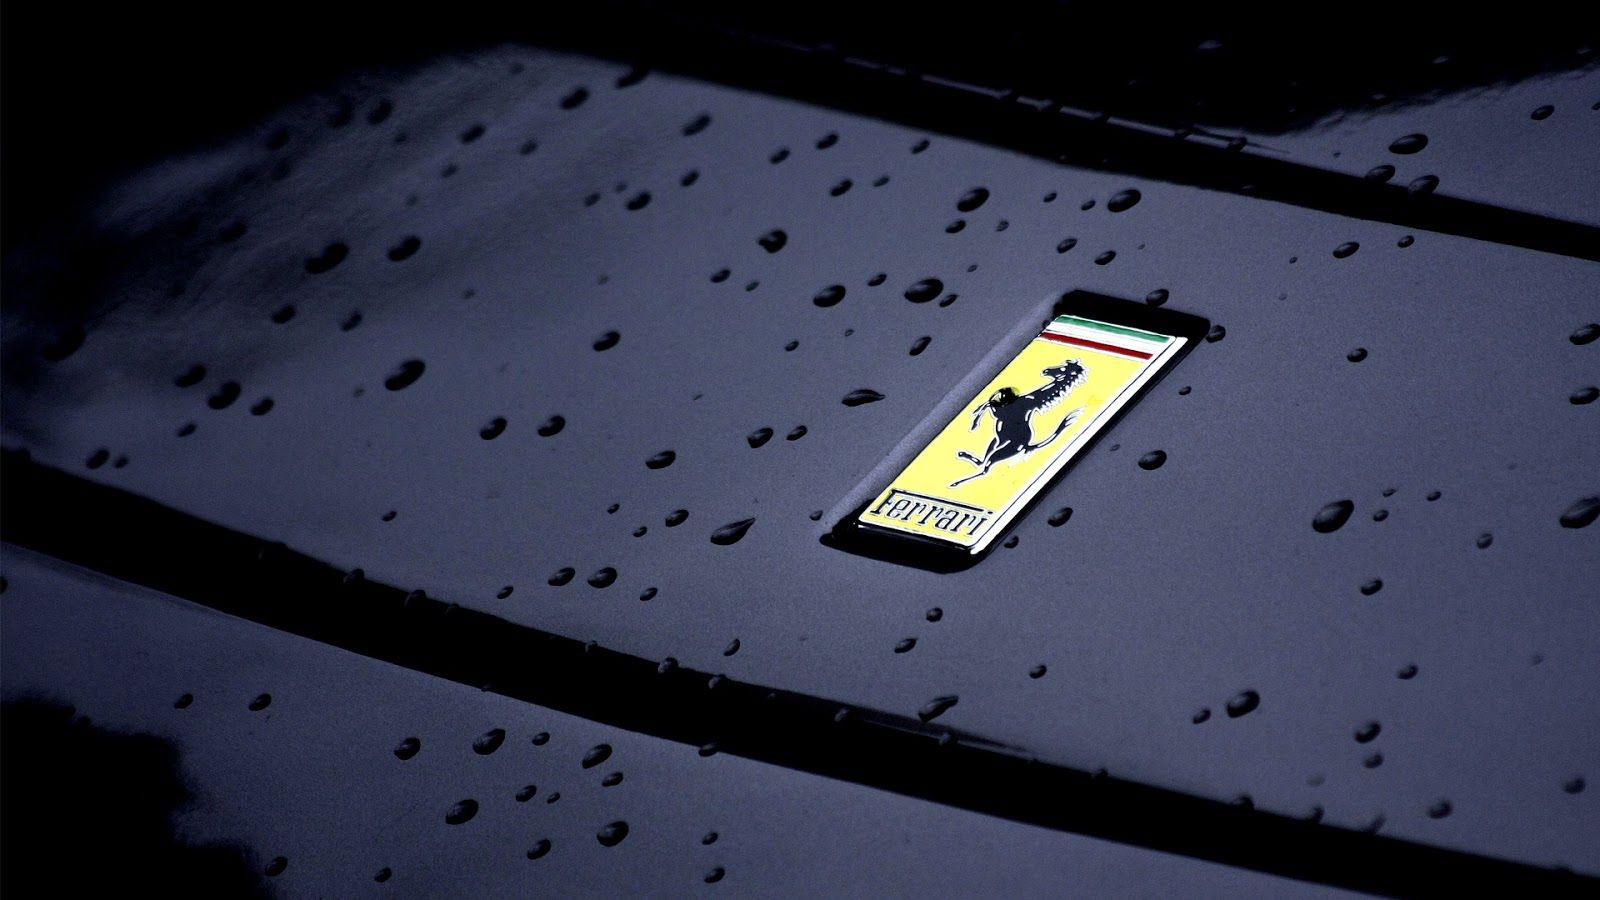 Ferrari Wallpaper Logo Photo Vehicles Wallpapers Pinterest - Car sign with namescar logos cars wallpaper hd for desktop laptop and gadget